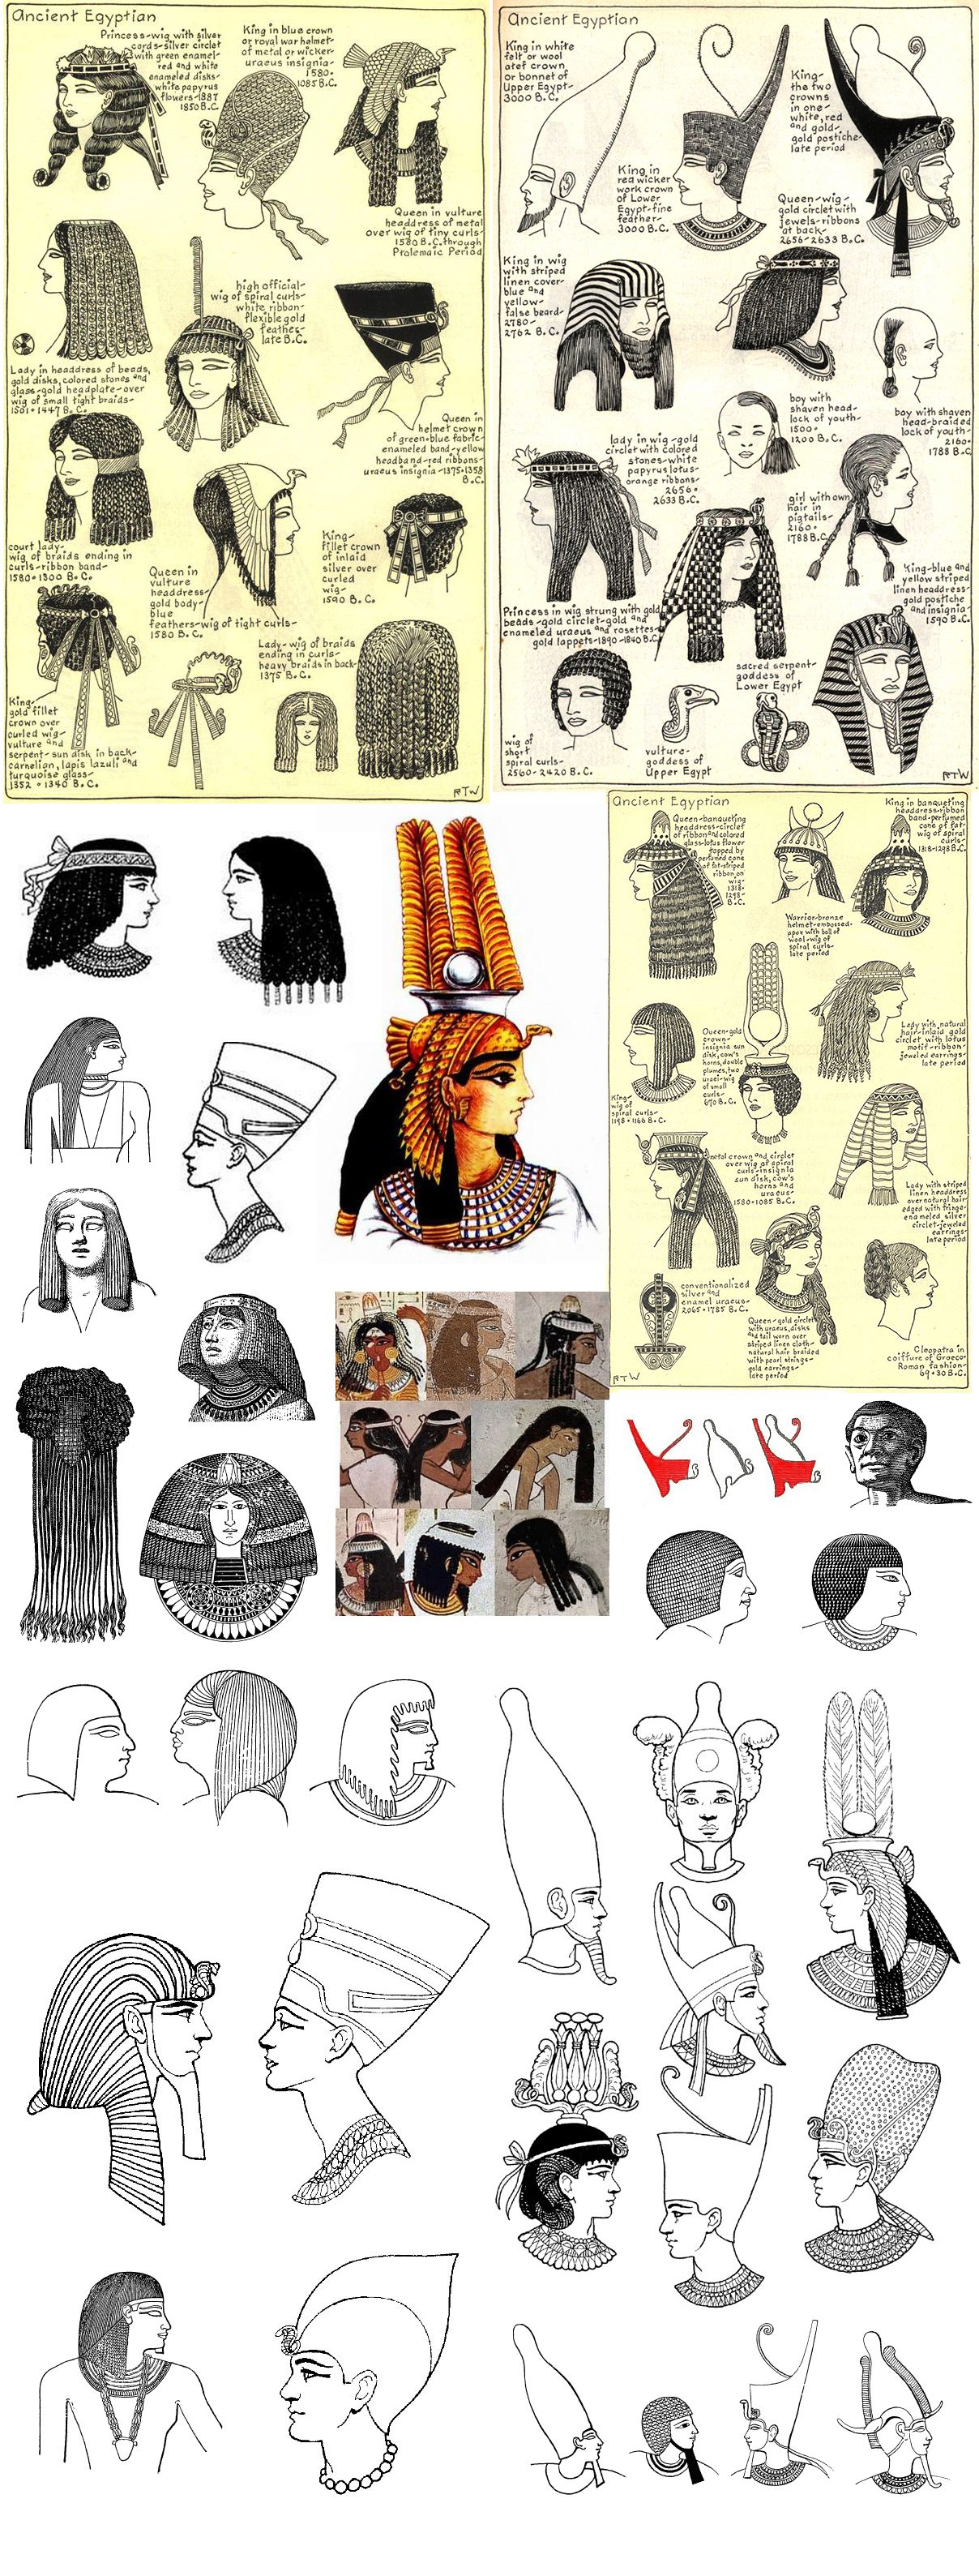 Boy hairstyle sketch hair style egypt  ancient language  pinterest  ancient egypt